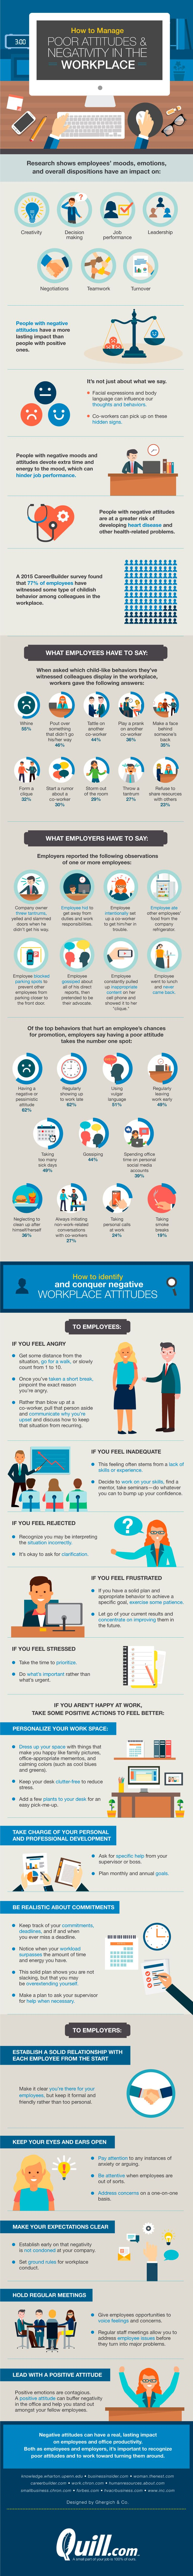 This infographic should be used annually, quarterly, even daily, in potentially hostile work places. We oftentimes forget that even adults lose their cool and respond inappropriately to situations. This infographic can be used as a steady tool to promote accountability, self-control, and climate control in the work environment. Poor attitudes take away from employee productivity- they only reflect discord and they are unwanted in any professional establishment. (6924)